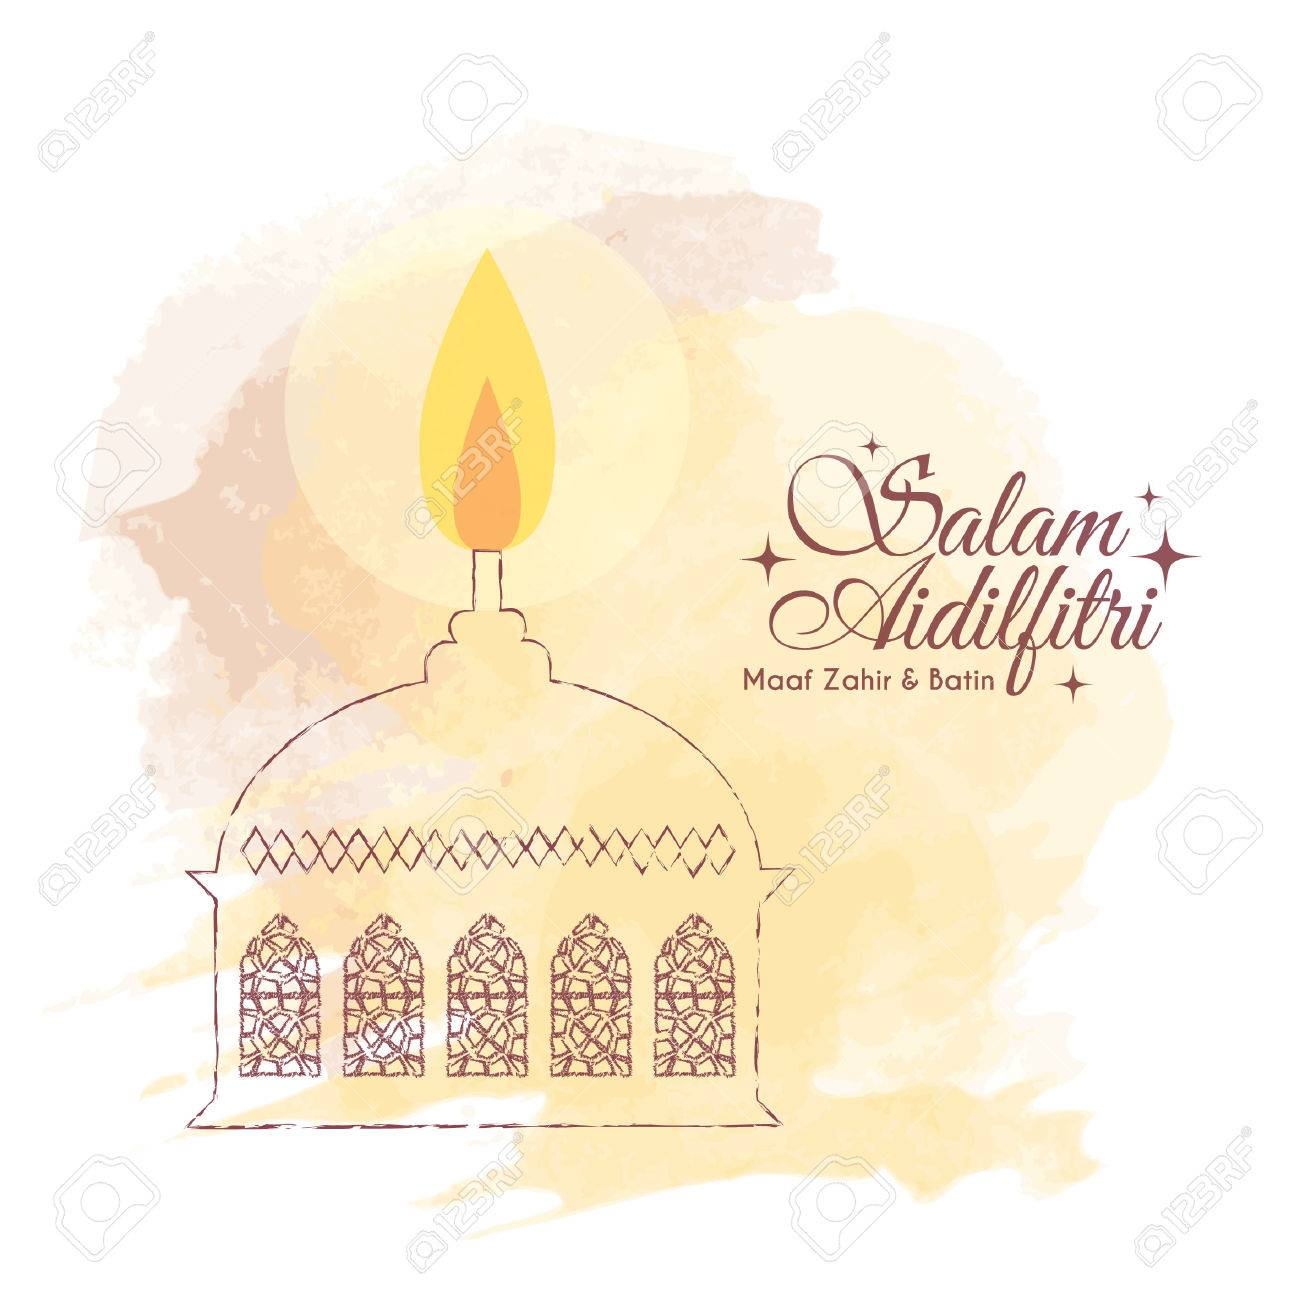 hari raya aidilfitri greeting card template design hand drawn muslim oil lamp pelita